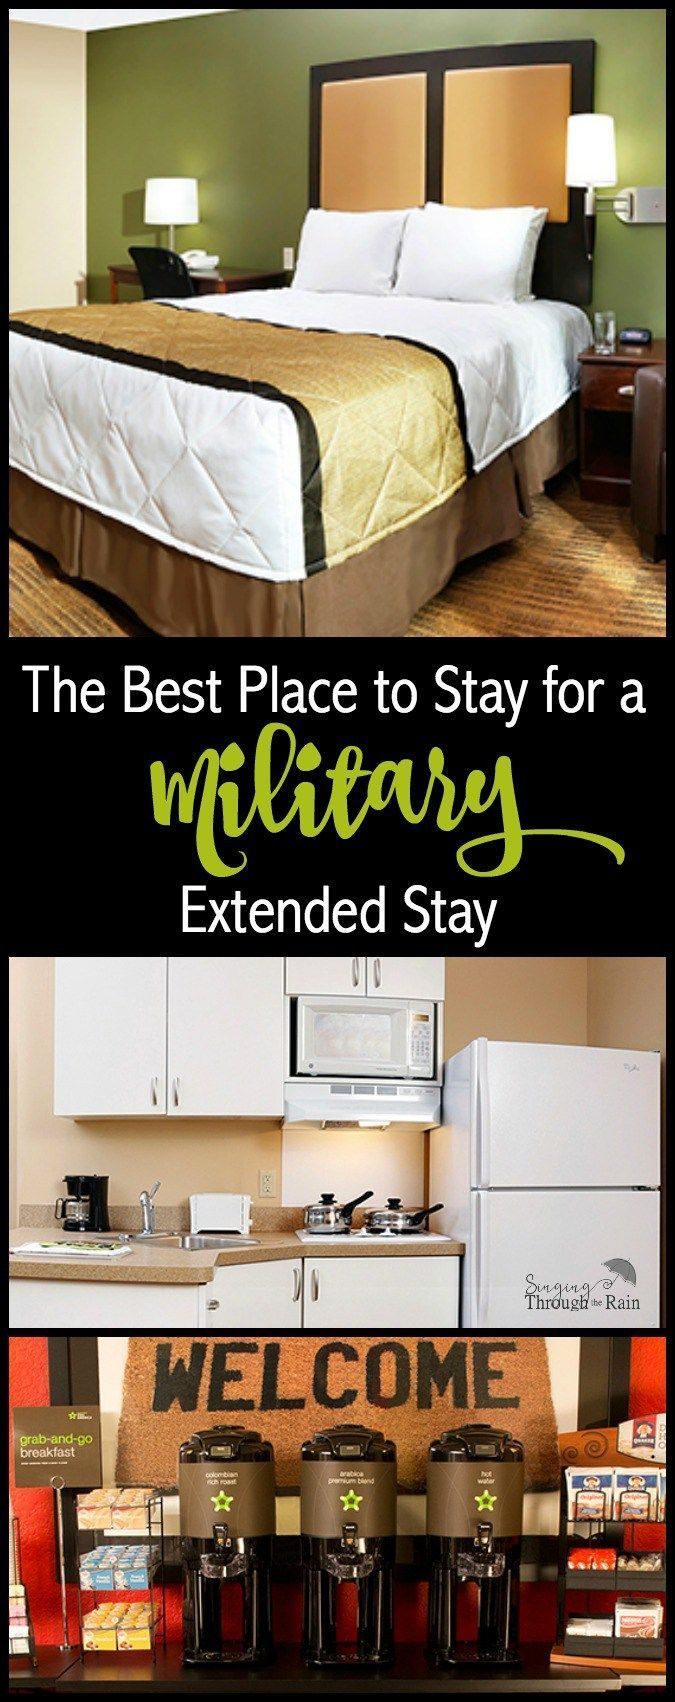 Whether you are PCSing across the country or your spouse is going on TDY, Extended Stay America's prices are always at or below the per diem rate. #myESA